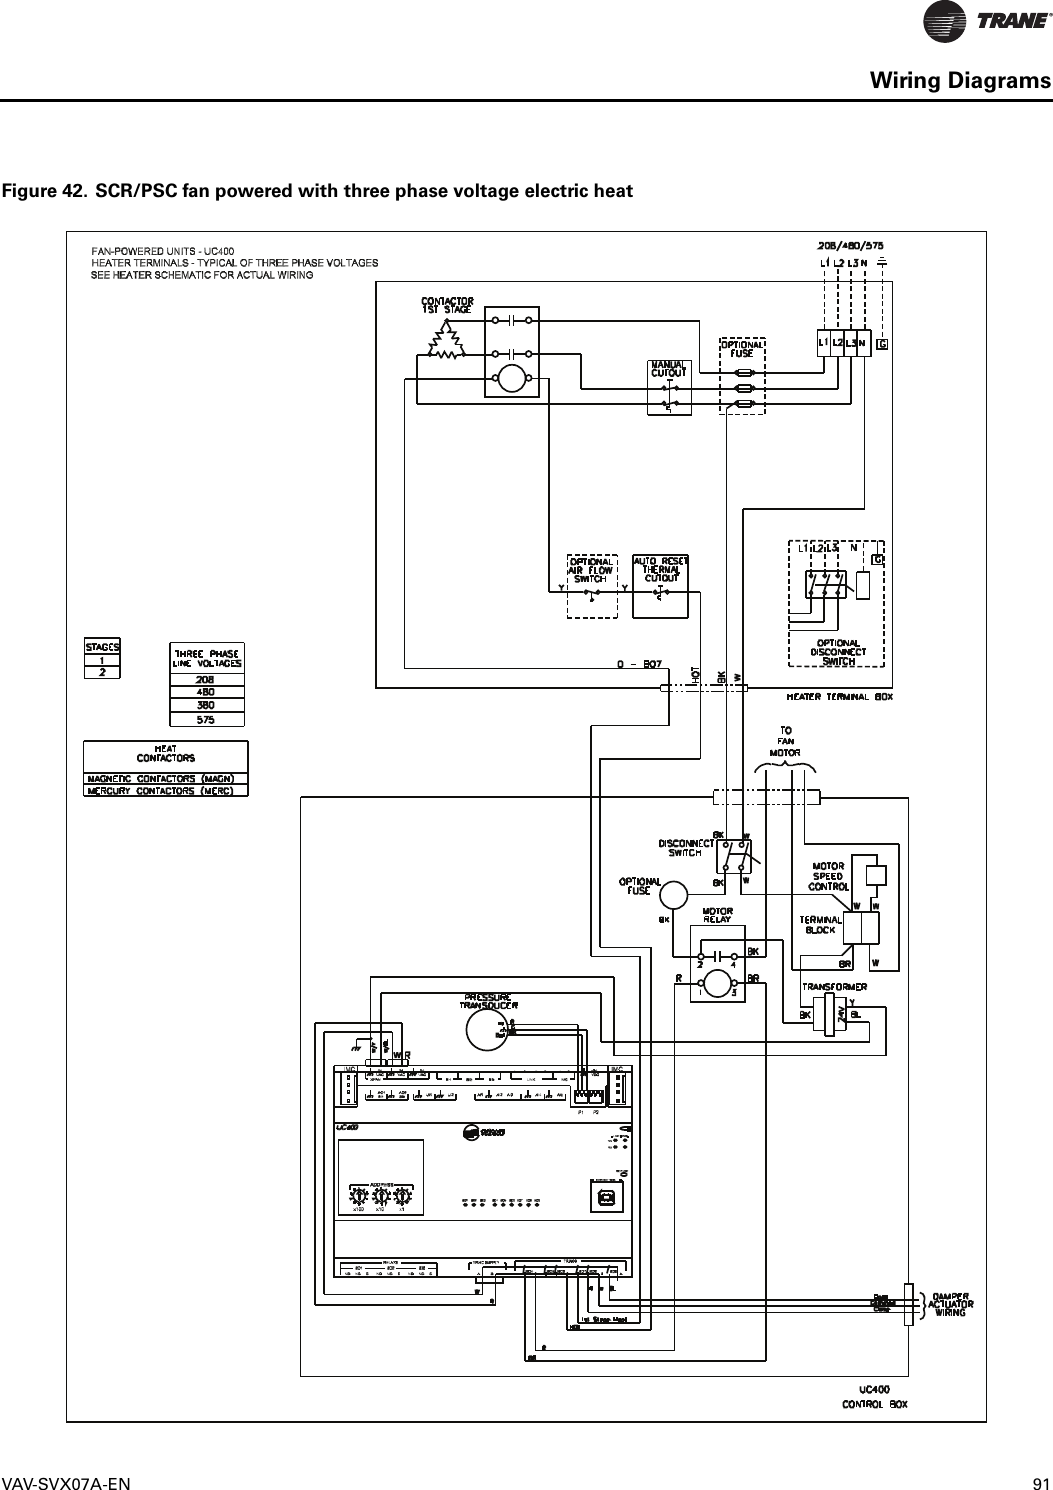 Wiring Schematic Vav Box